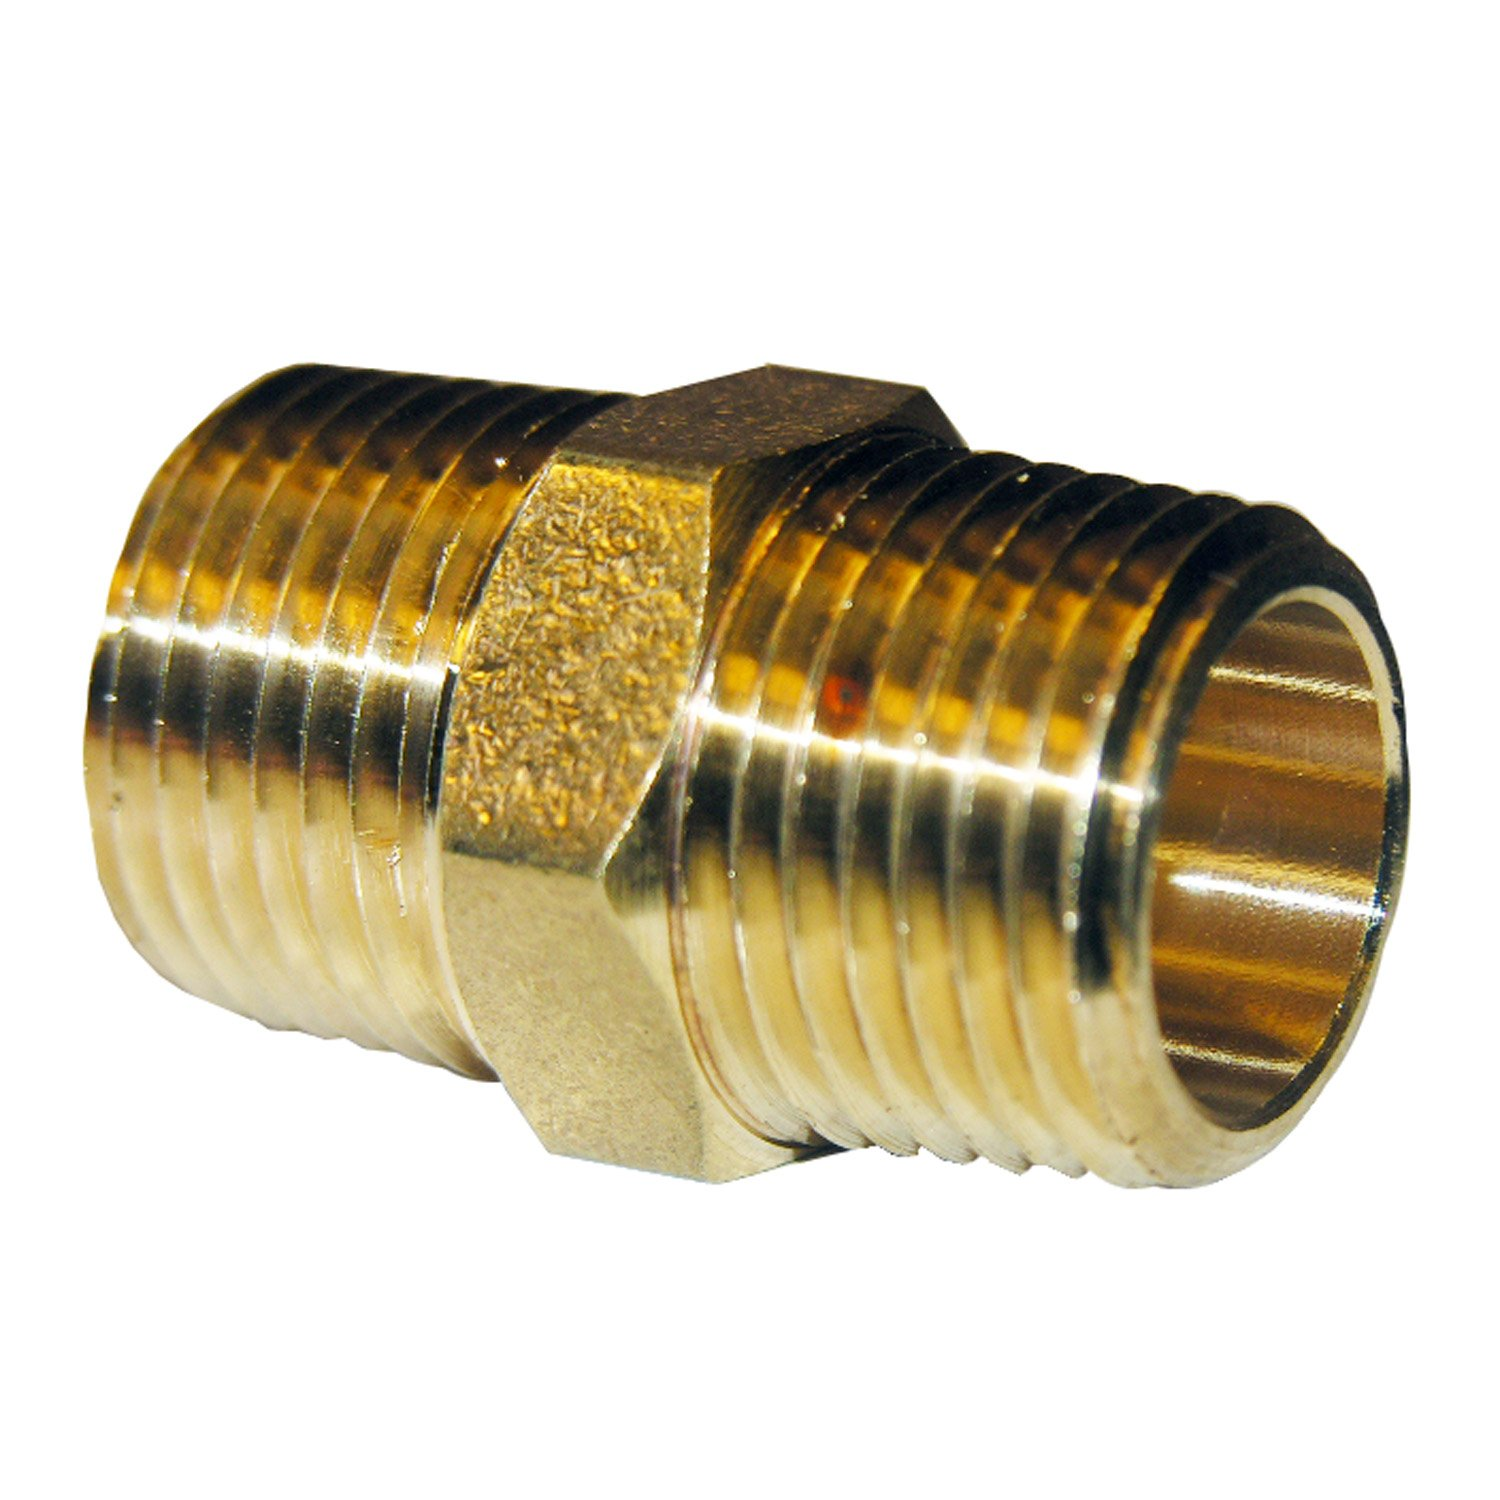 LASCO 17 8669 3 4 Inch Male Pipe Thread Brass Hex Nipple